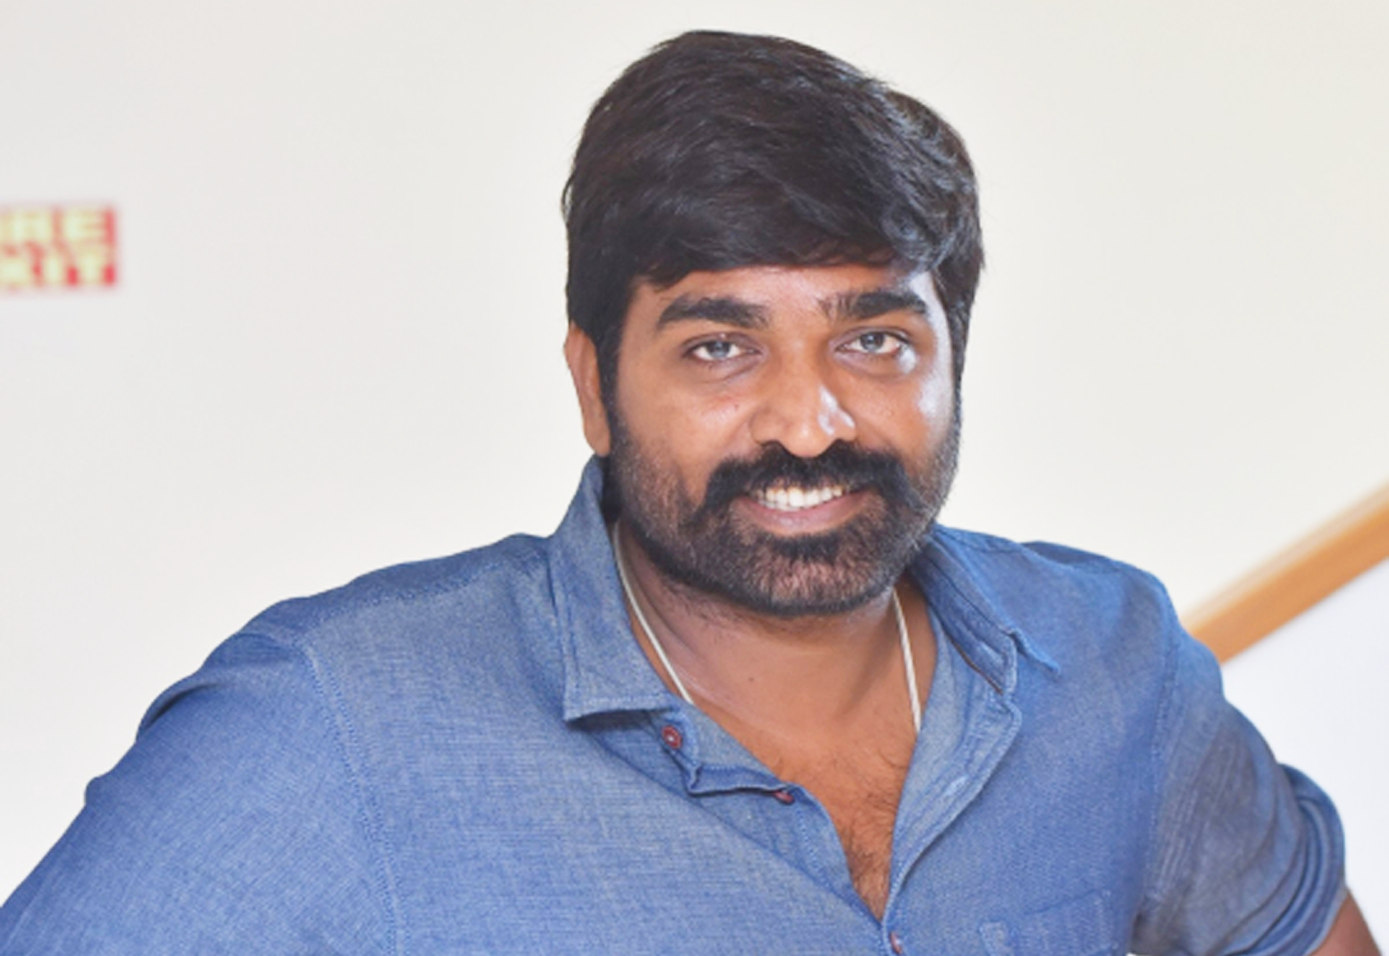 Makkal Selvan Vijay Sethupathi to play Muthiah Muralidharan's role in cricketer's official biopic